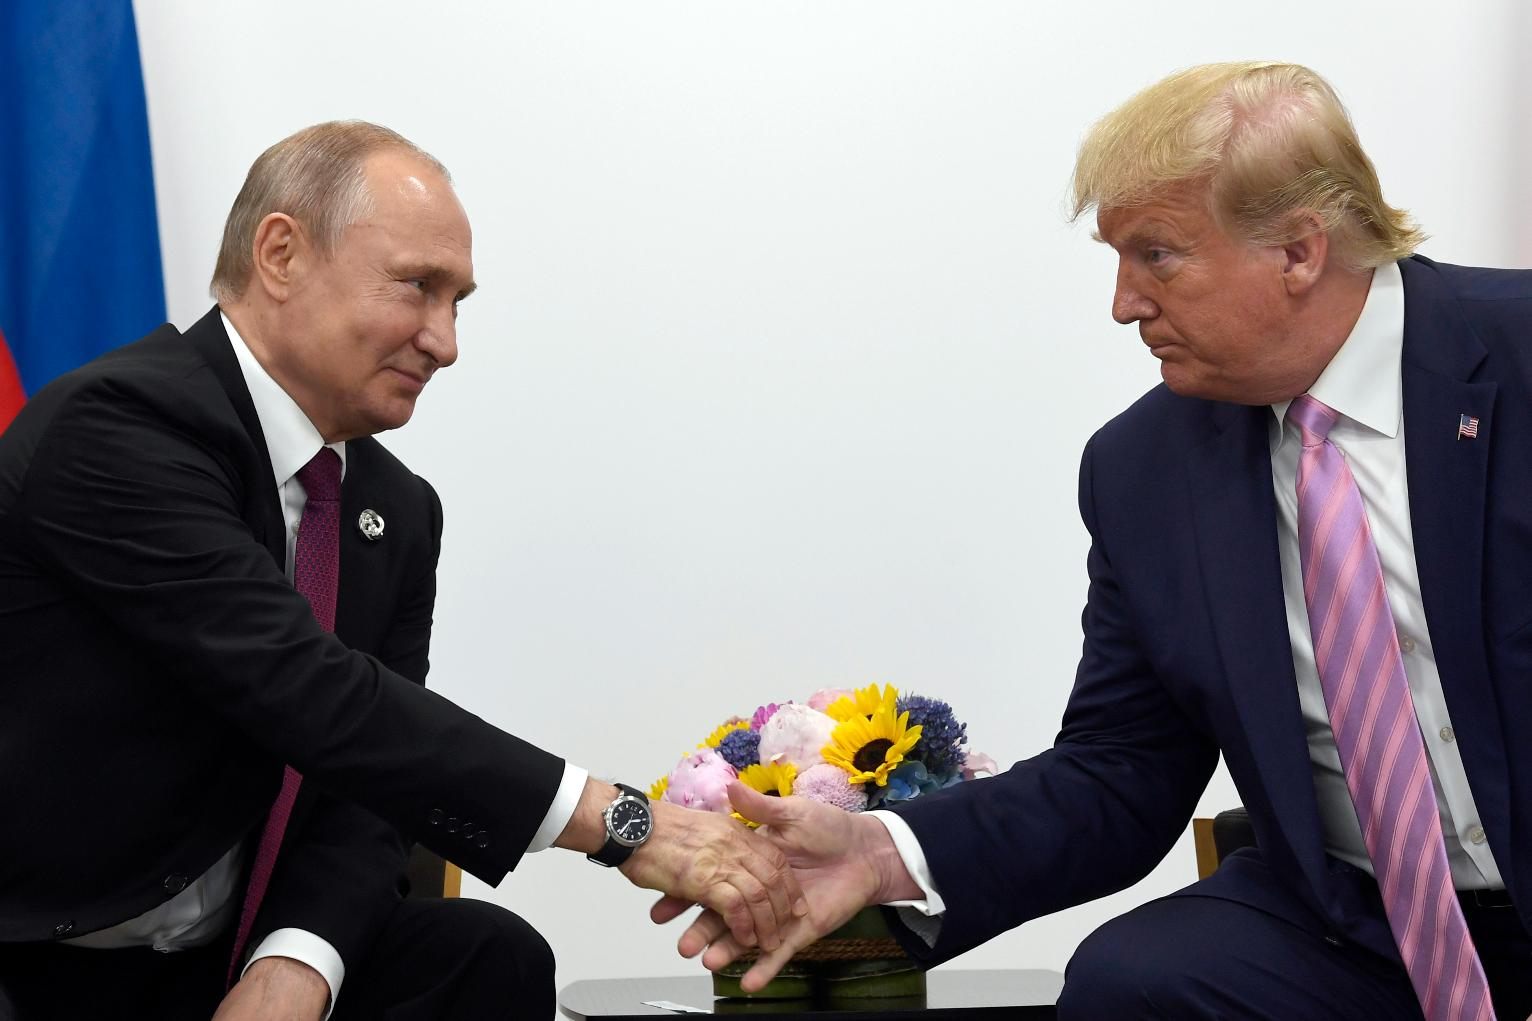 2016 Again? Russia Back to Stirring Chaos in U.S. Election   World News   US  News